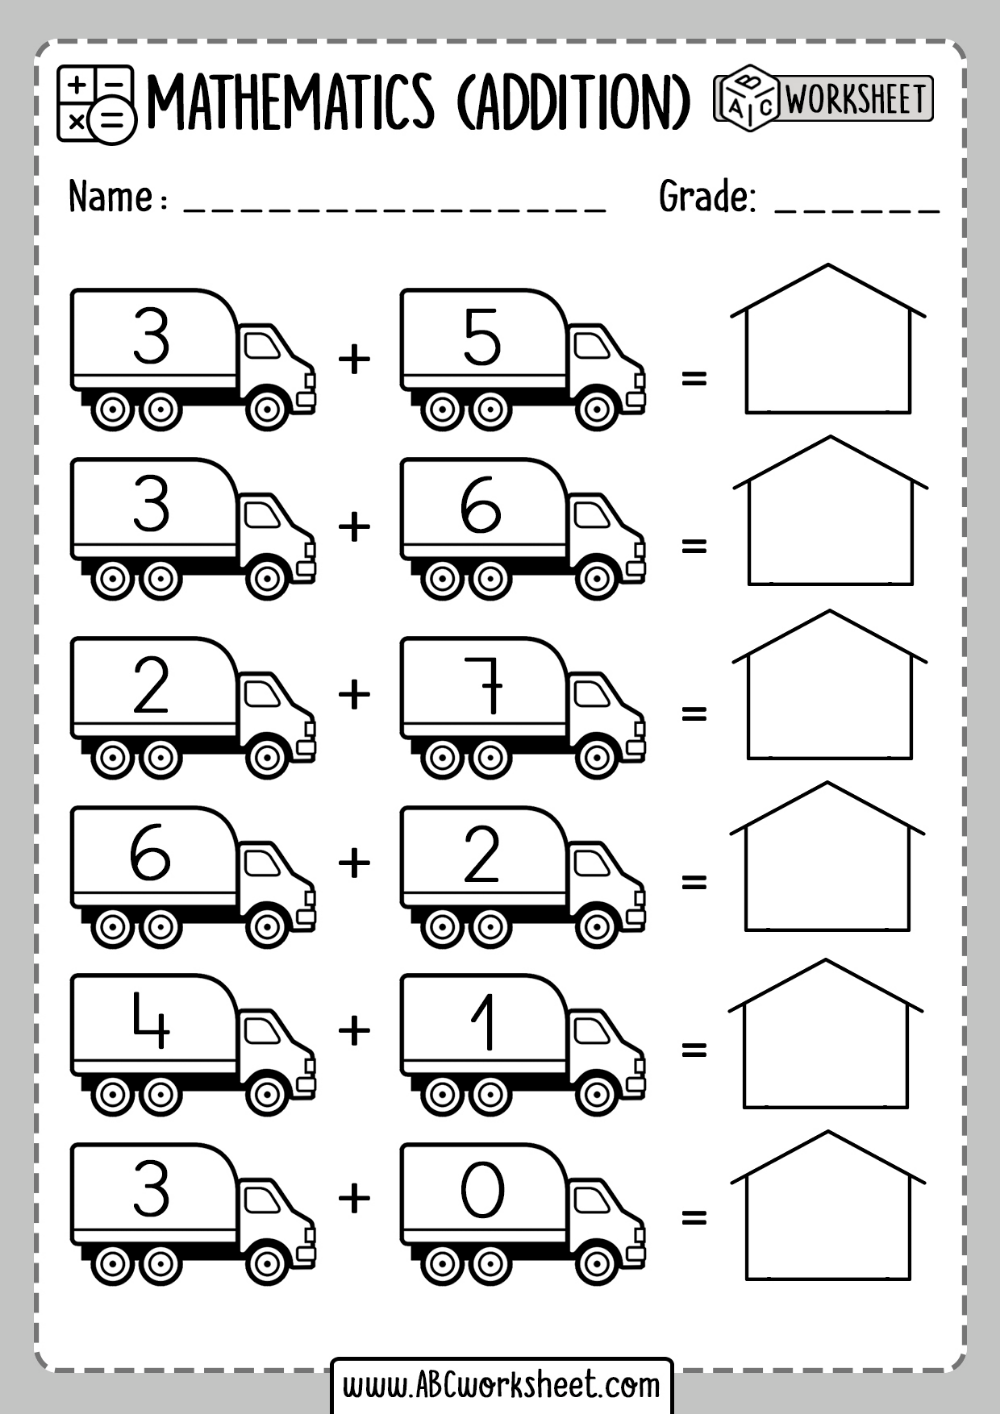 Free Addition Worksheets   Kindergarten math worksheets addition [ 1414 x 1000 Pixel ]